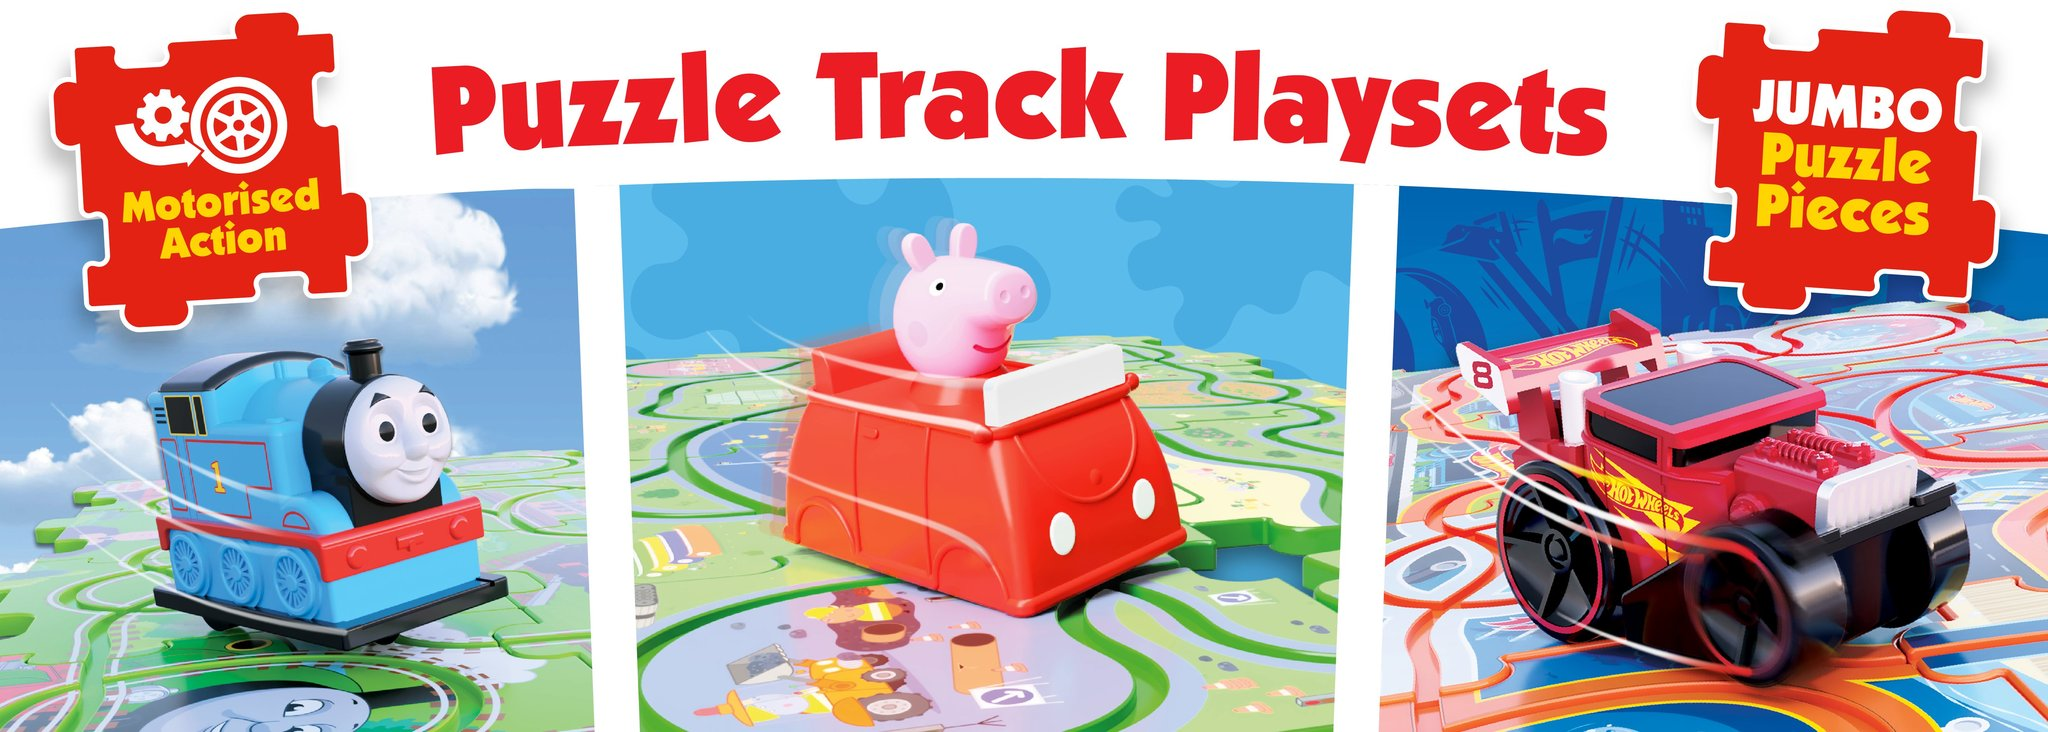 Puzzle Track Playset